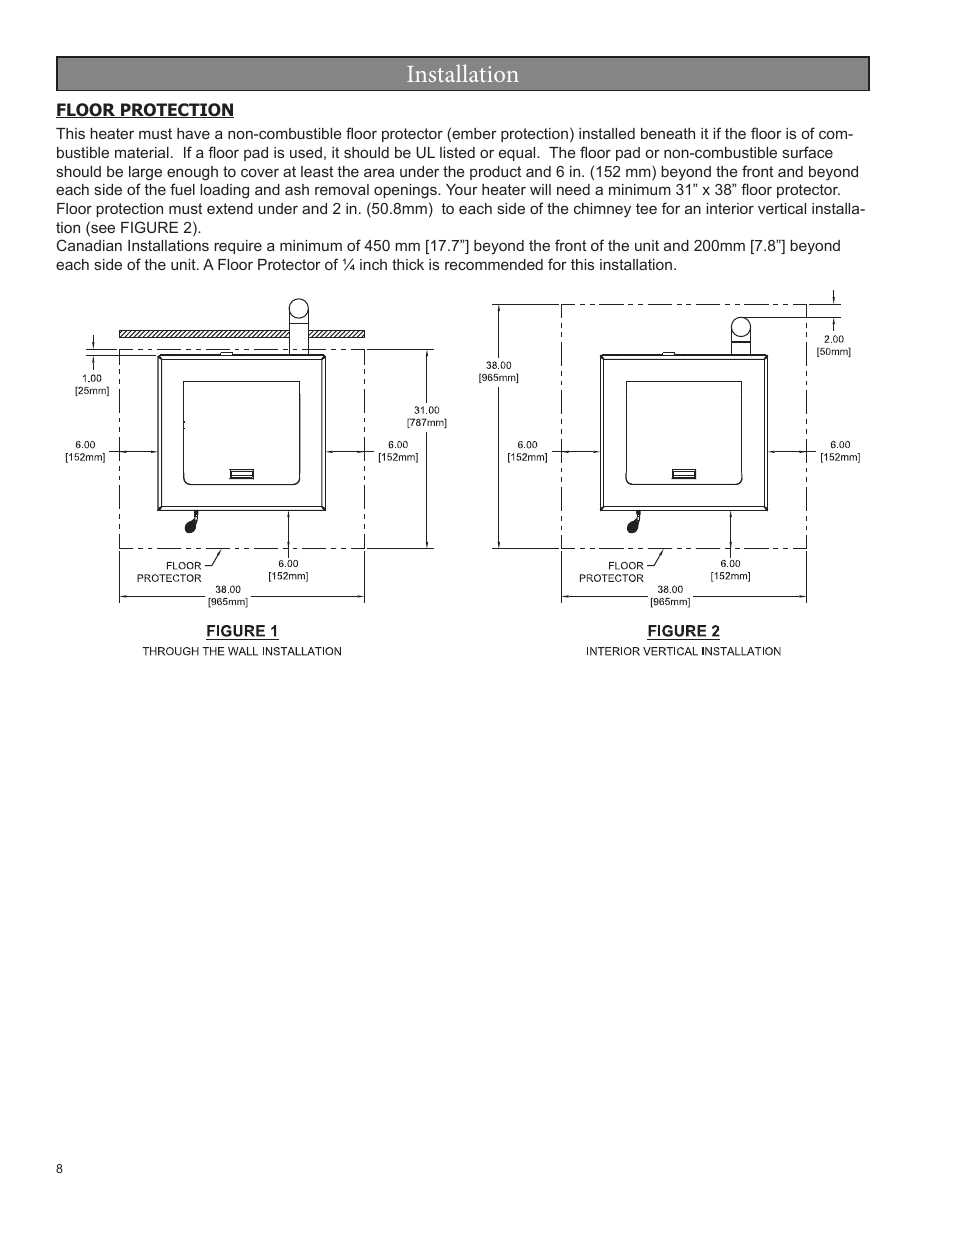 Installation Vogelzang Vg5770 User Manual Page 8 28